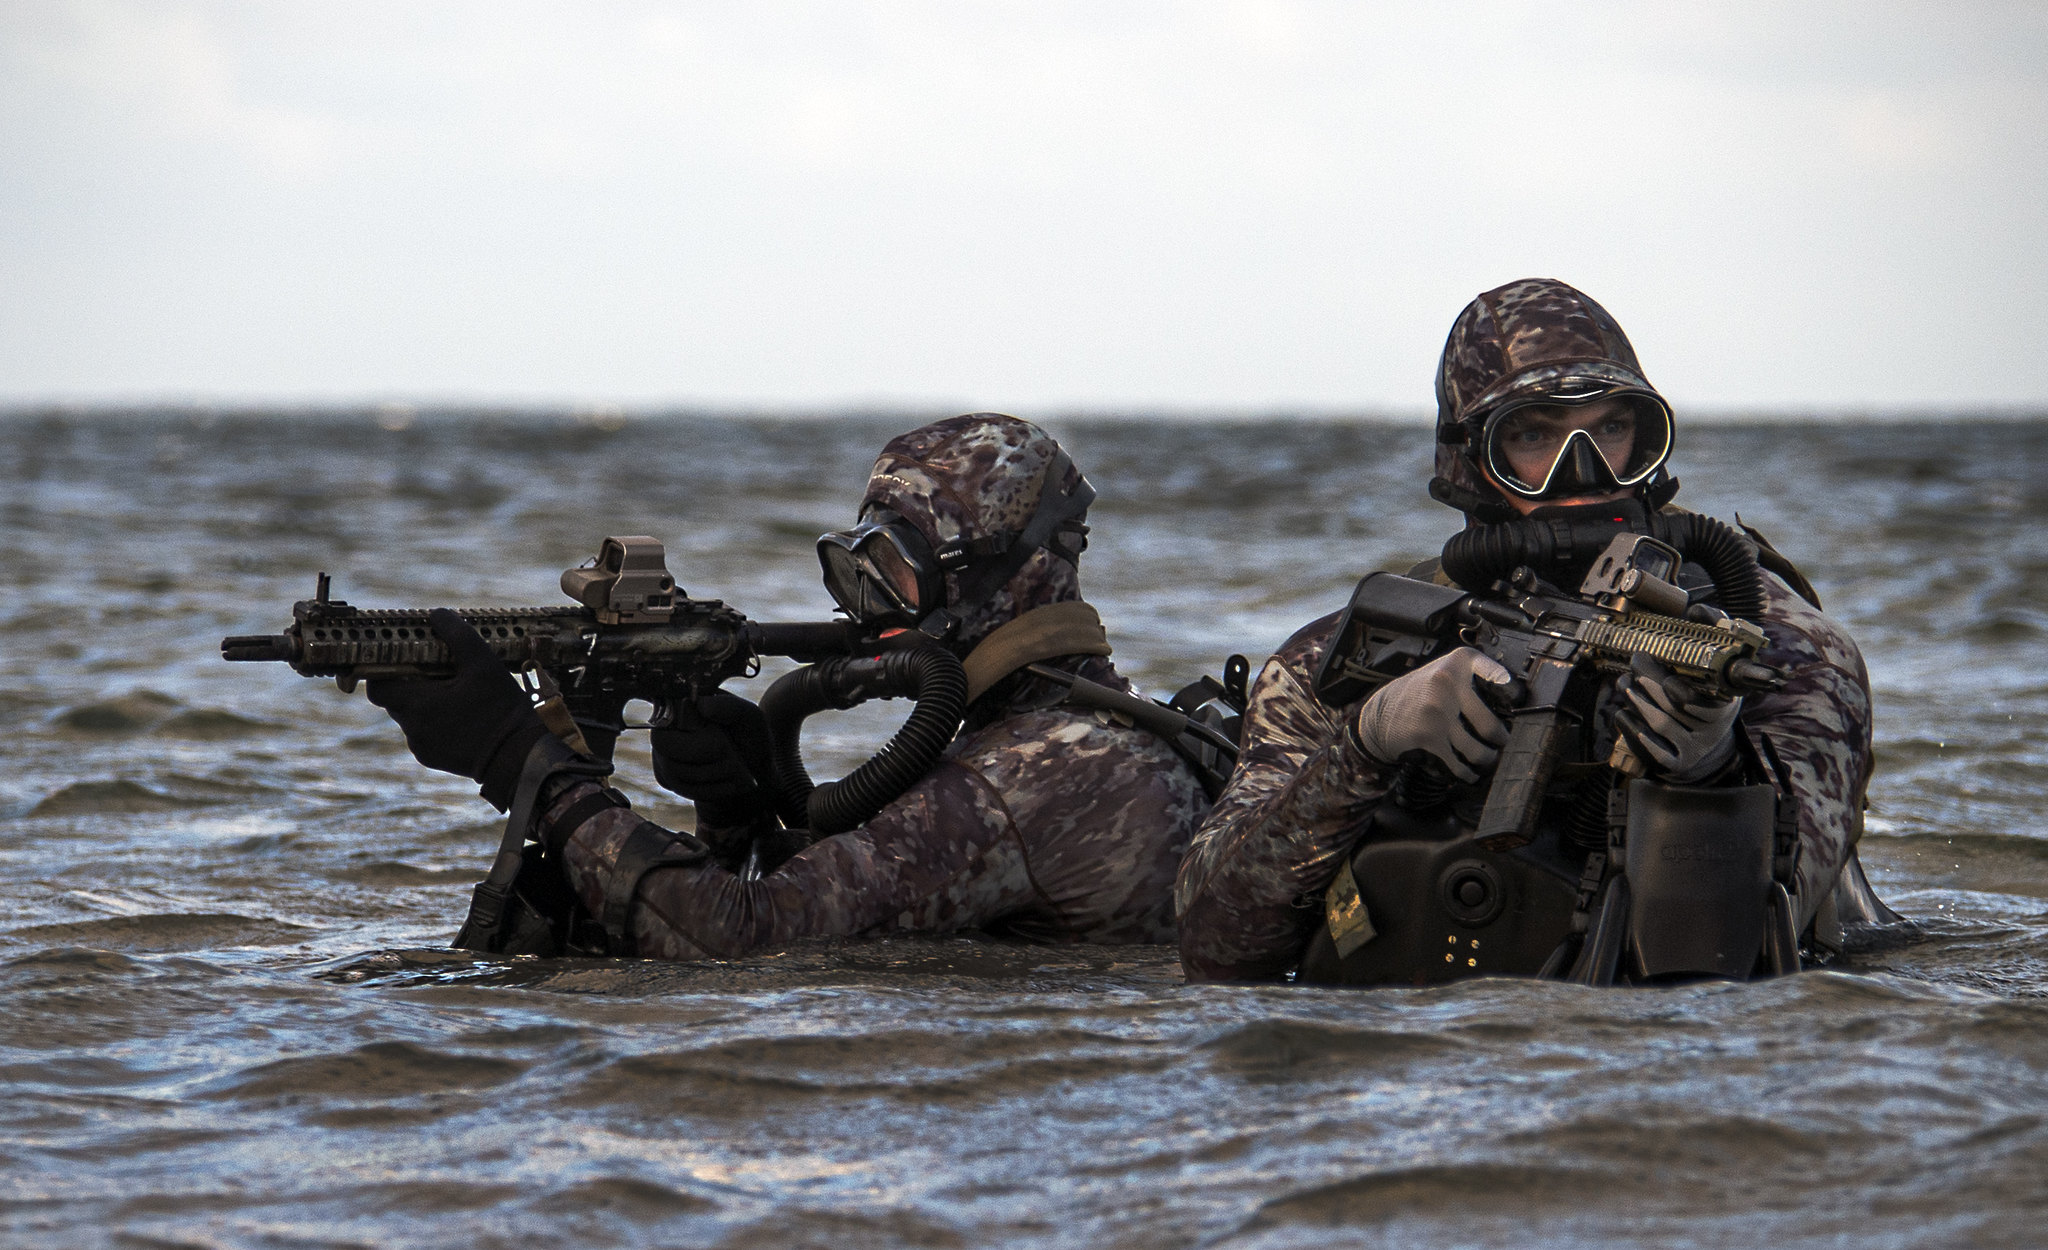 Sailors assigned to Naval Special Warfare Group 2 conduct military dive operations off the East Coast on May 29, 2019. (Senior Chief Mass Communication Specialist Jayme Pastoric/Navy)